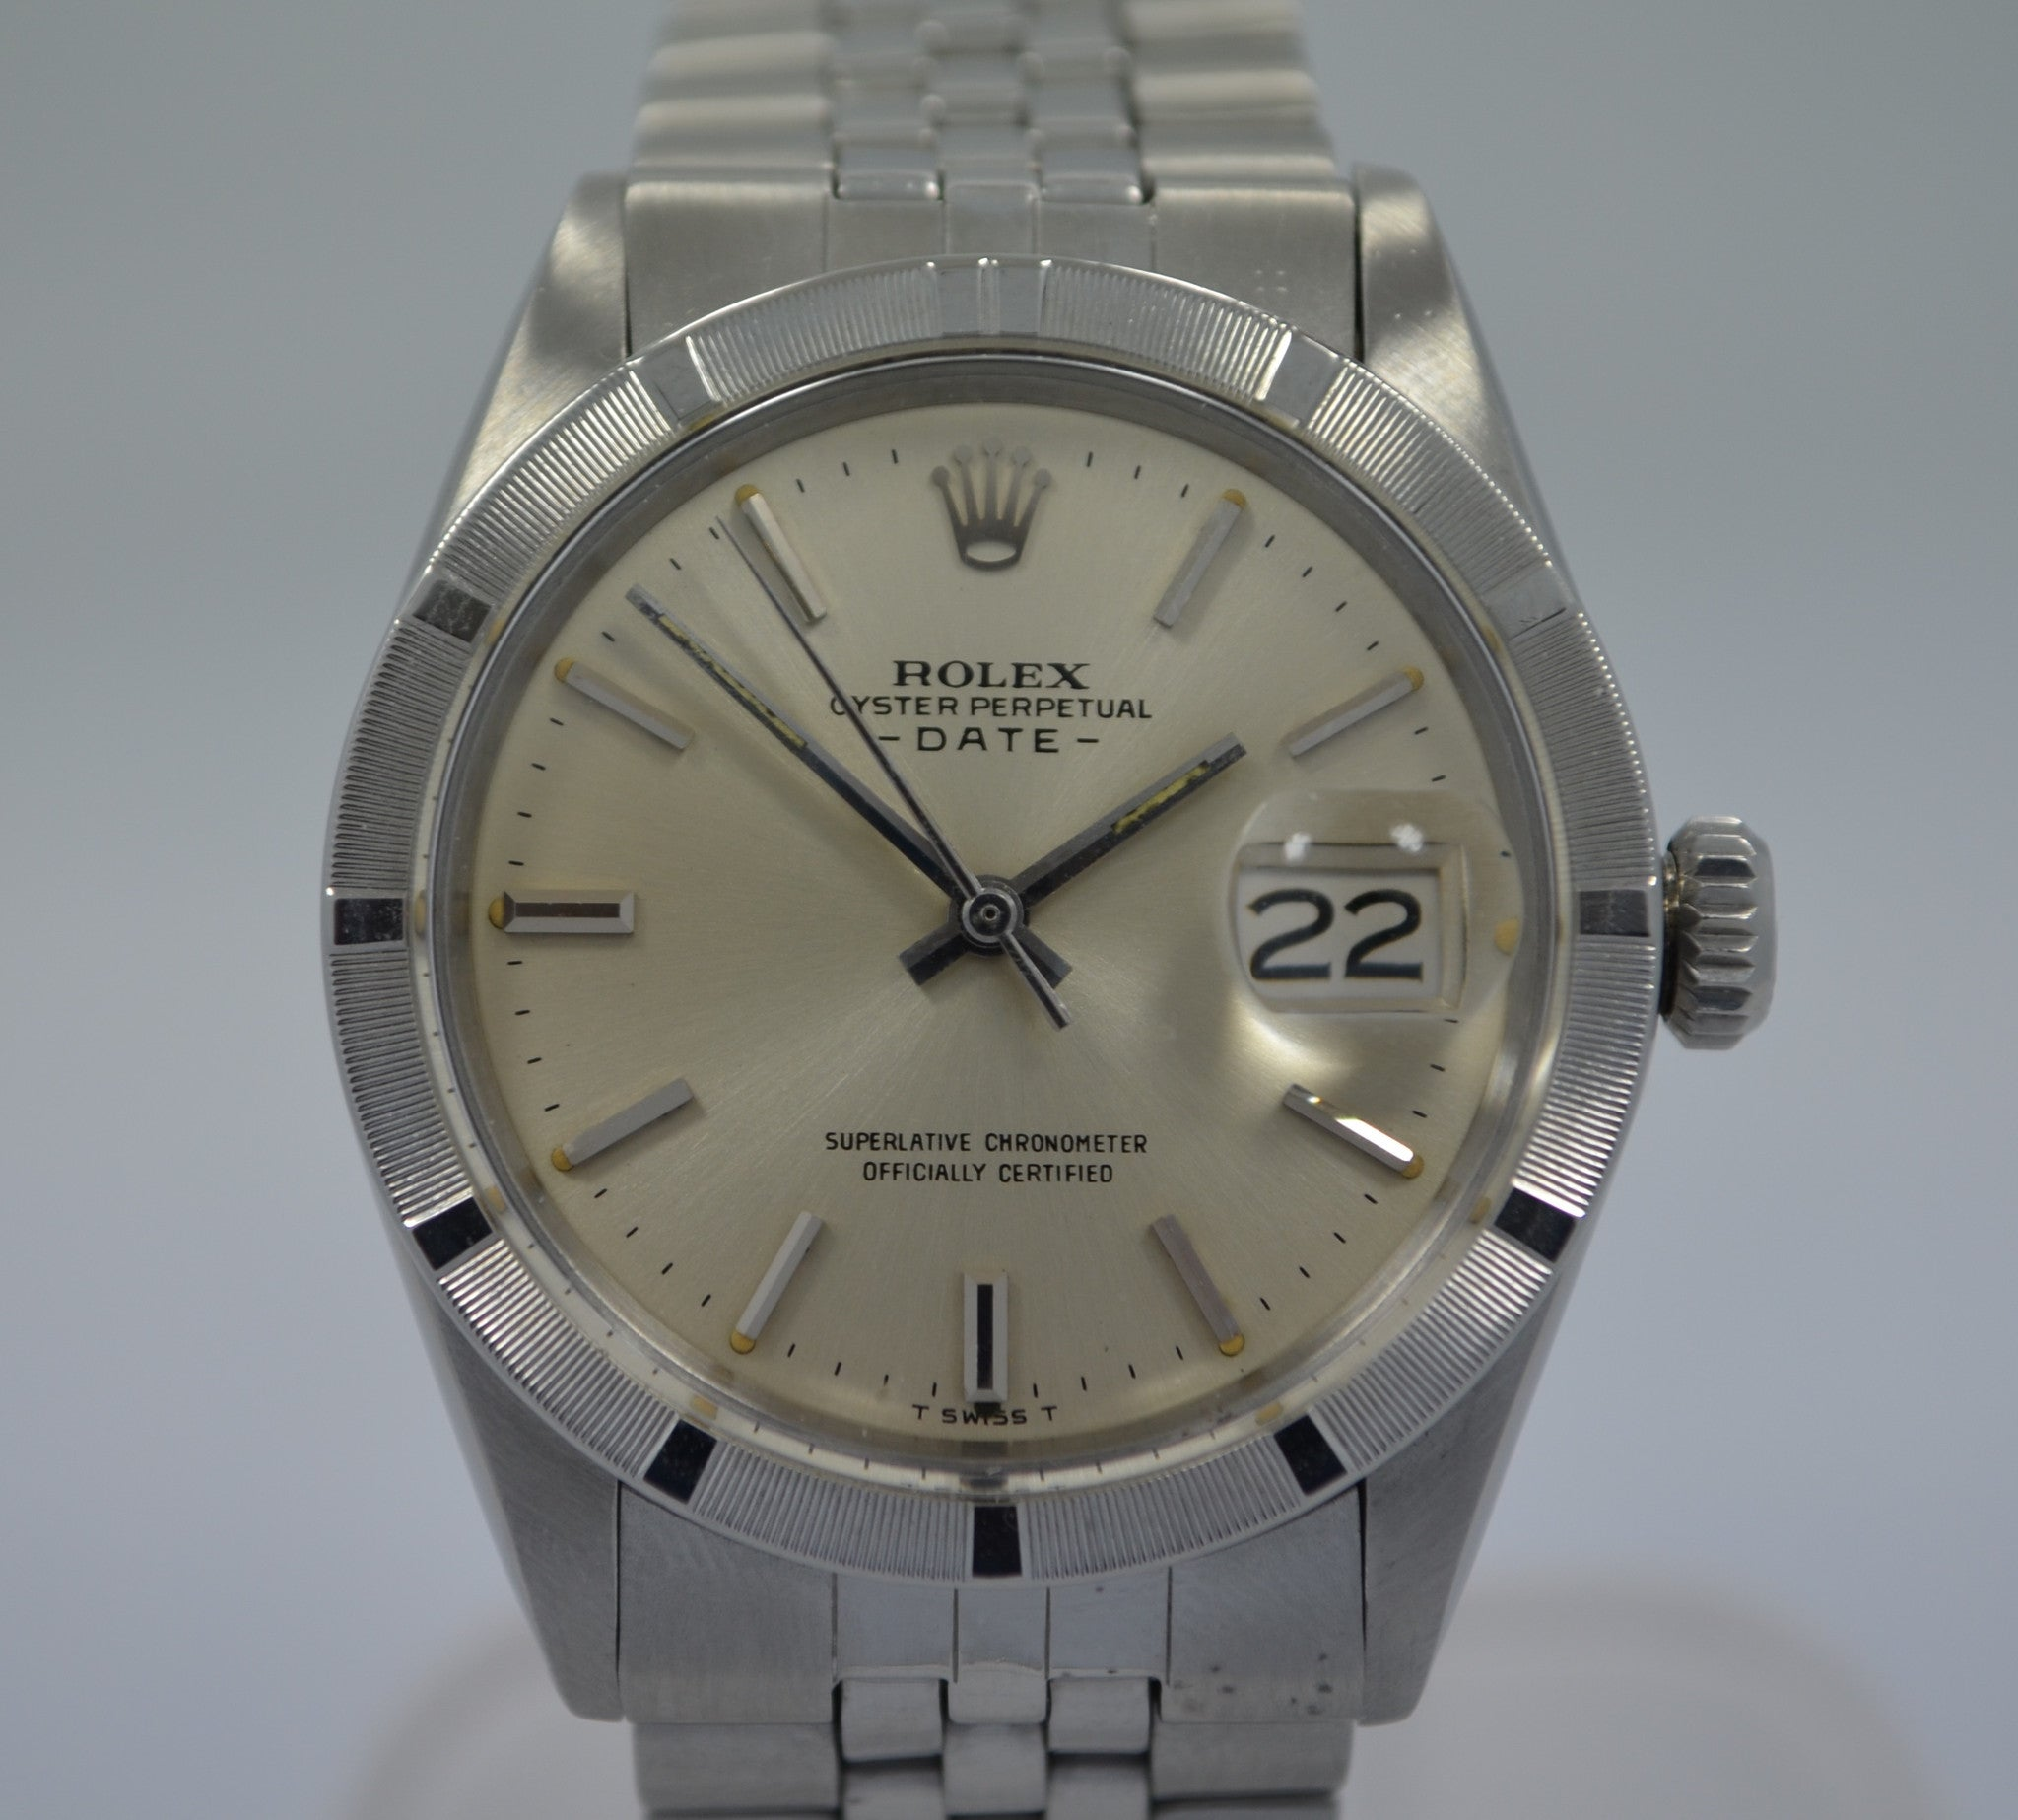 Vintage Rolex 1501 Oyster Perpetual Date 1968 Stainless Steel Silver Wristwatch